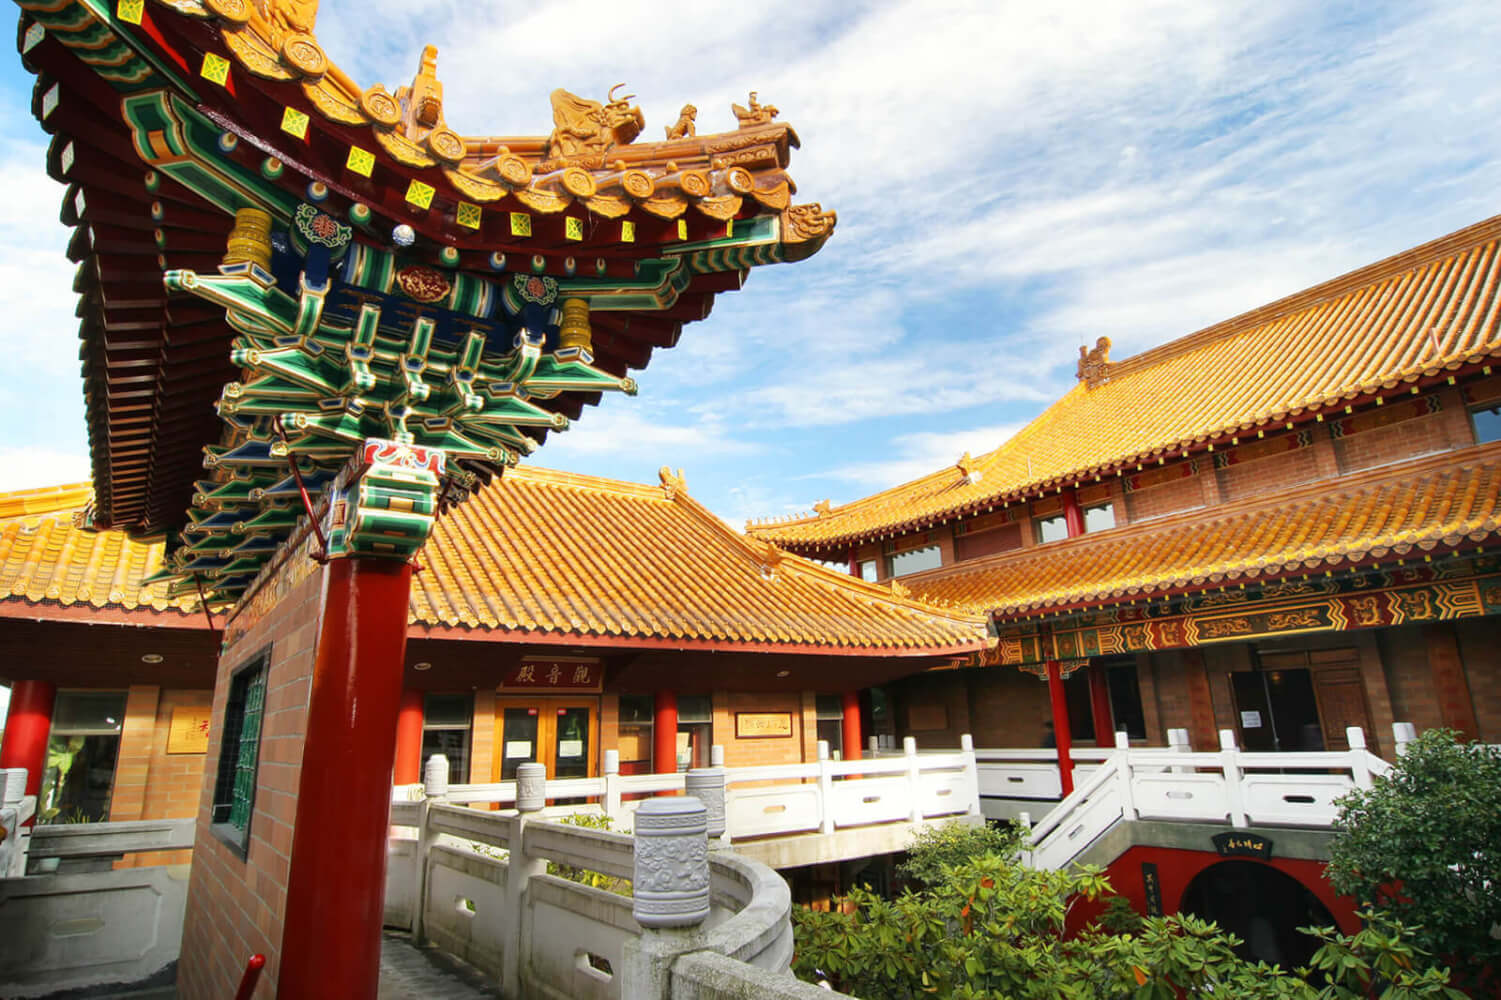 The Temples Structural Magnificence Lies In Its Unique Combination Of Ancient Chinese Imperial Style Construction Dougong And Porcelain Roof Tiles